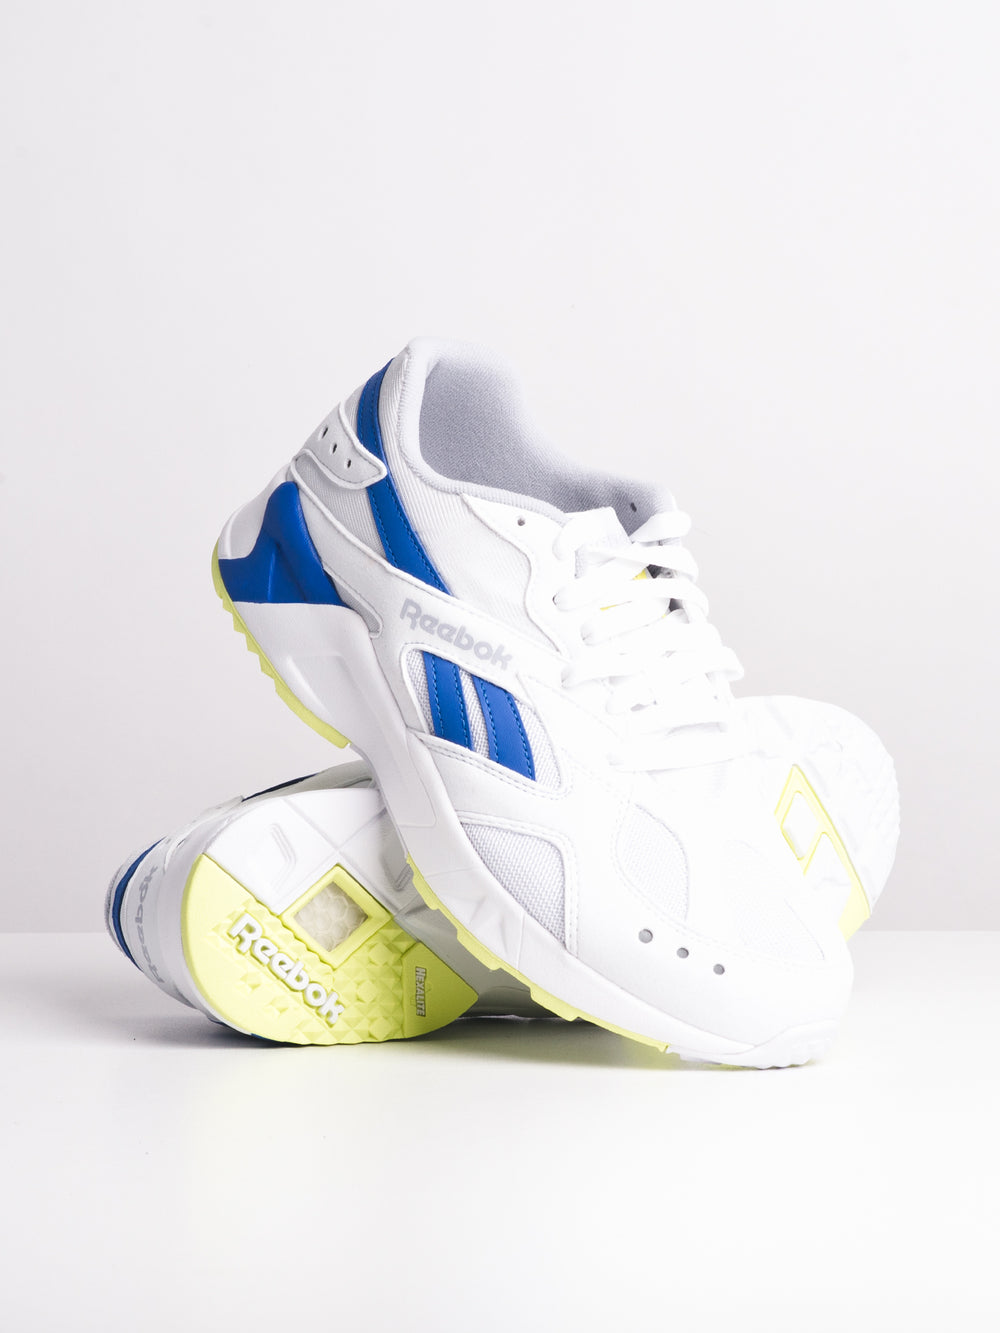 MENS AZTREK - WHITE/GREY - CLEARANCE